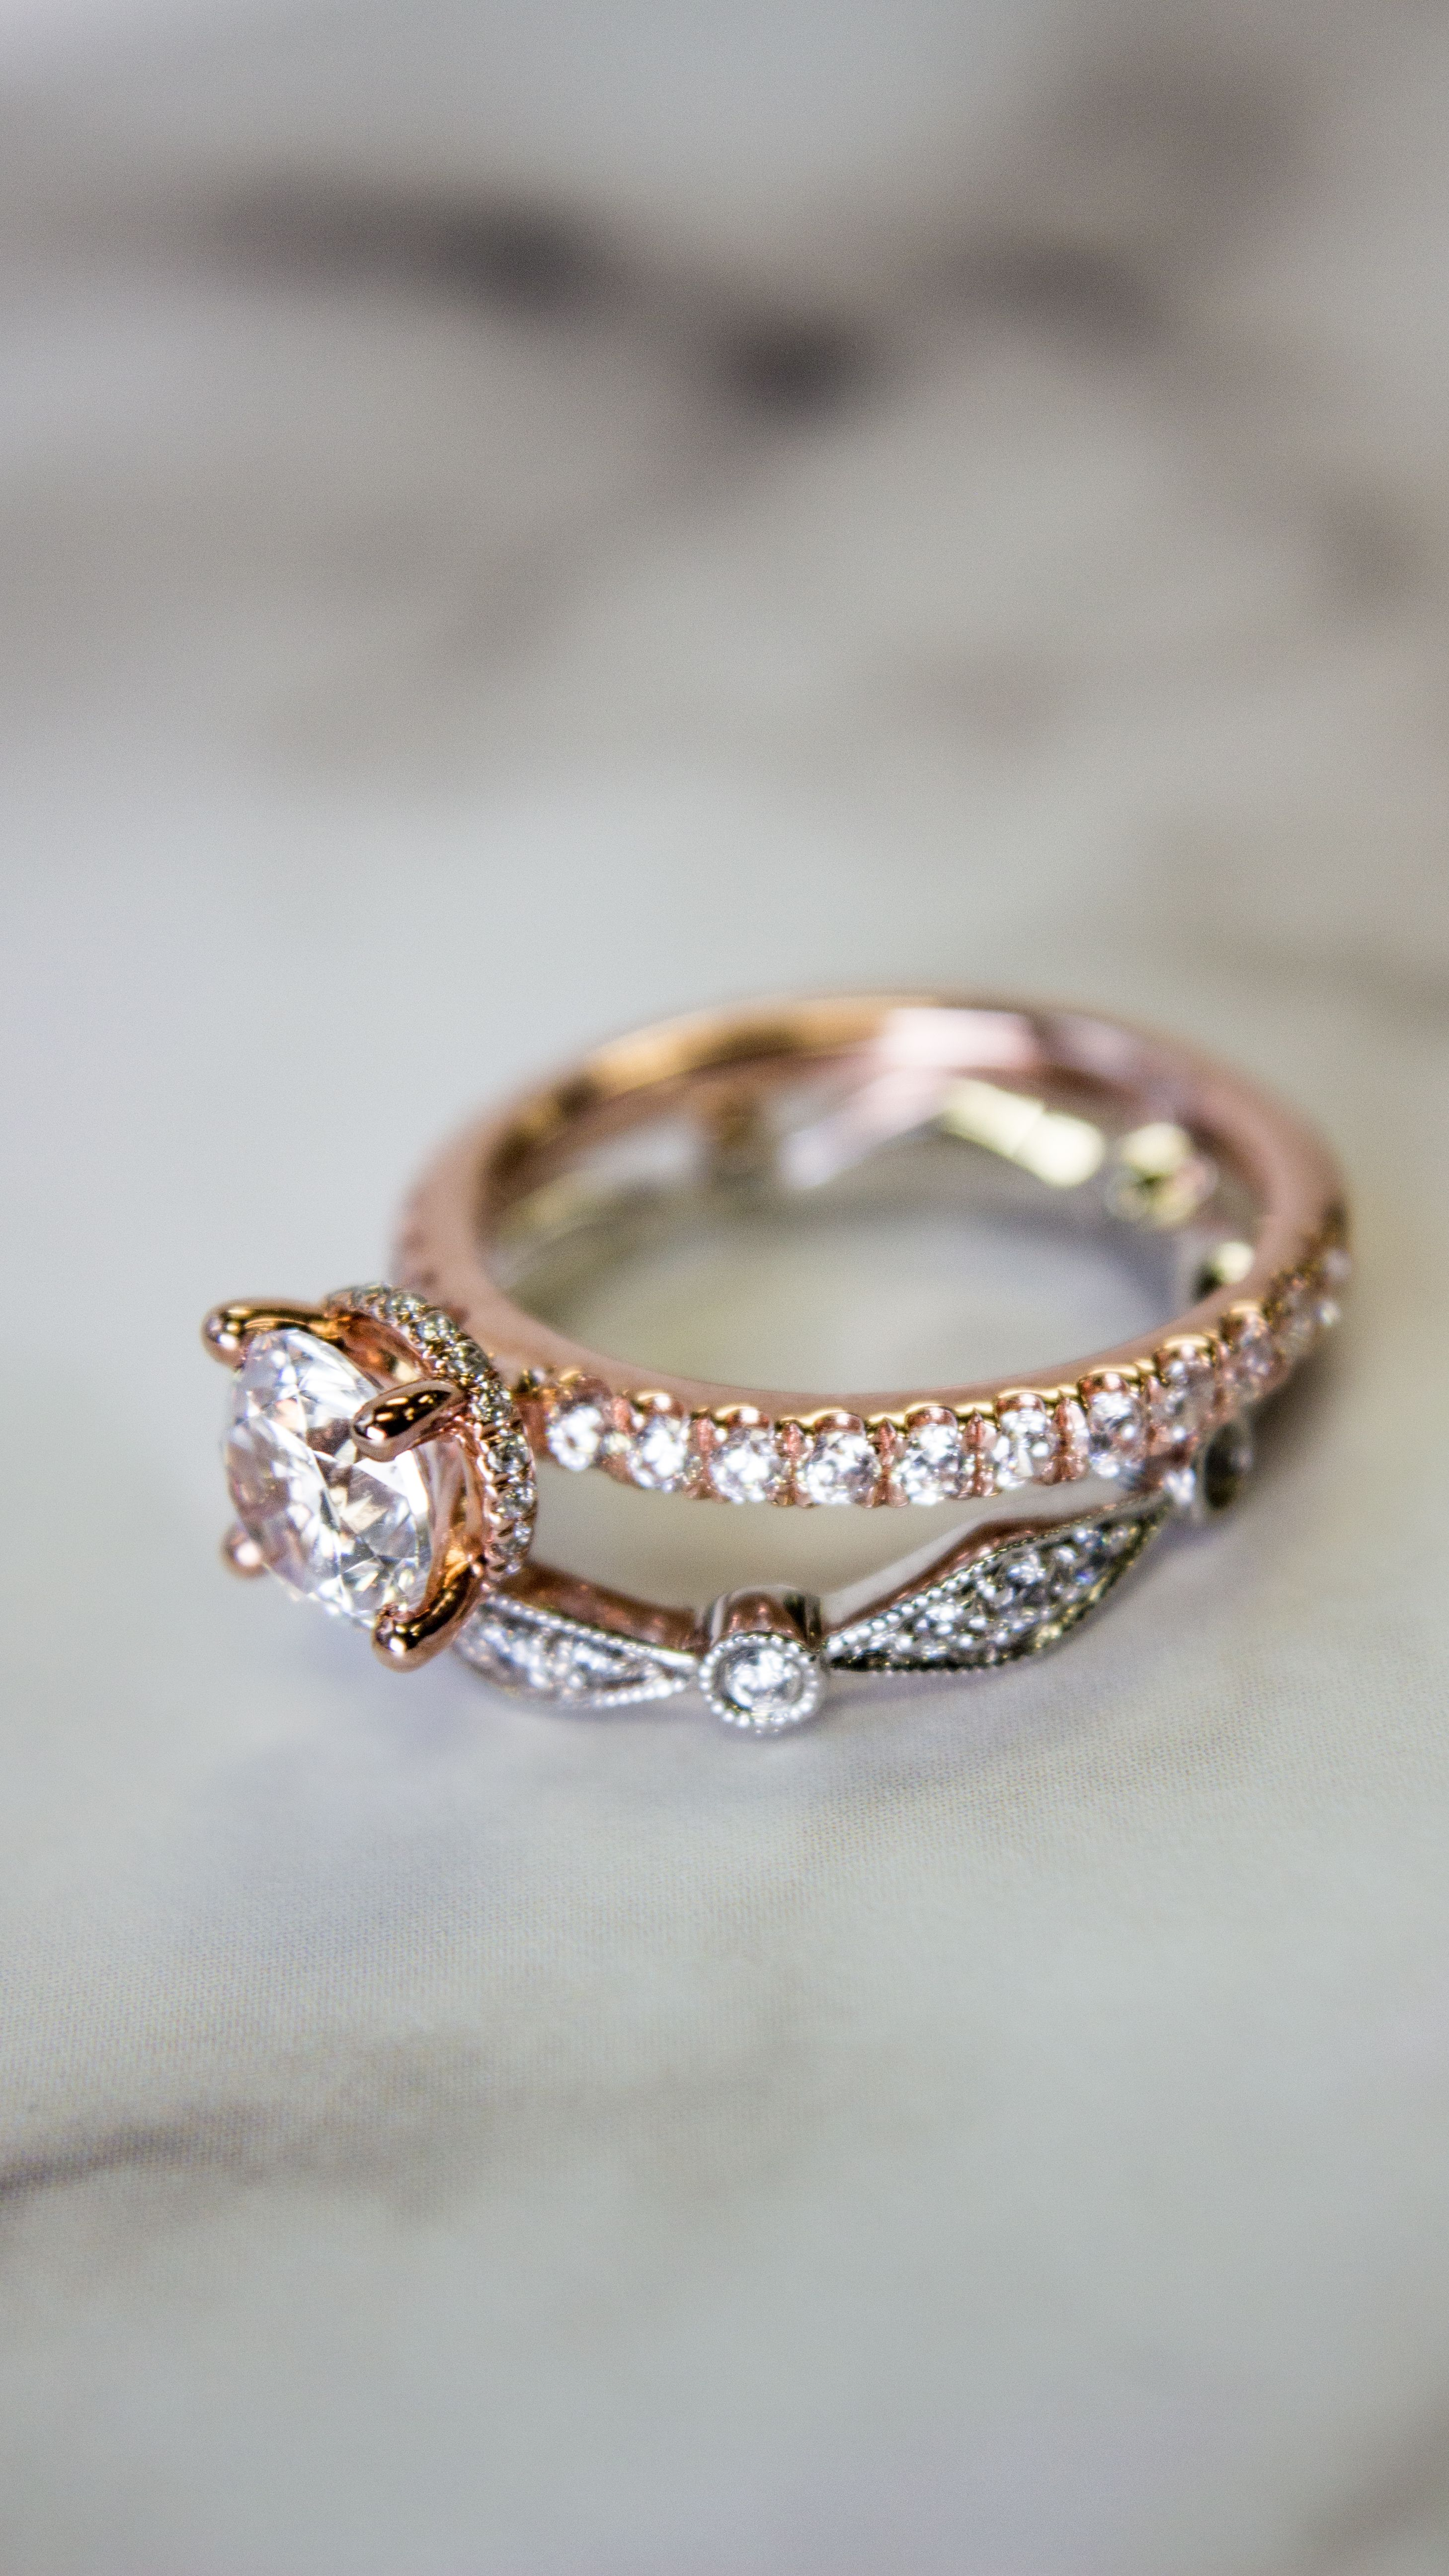 22687624a8e221 Rose Gold Hidden Halo Round Diamond Engagement Ring with Geometric  Stackable Wedding Band Fashion Ring